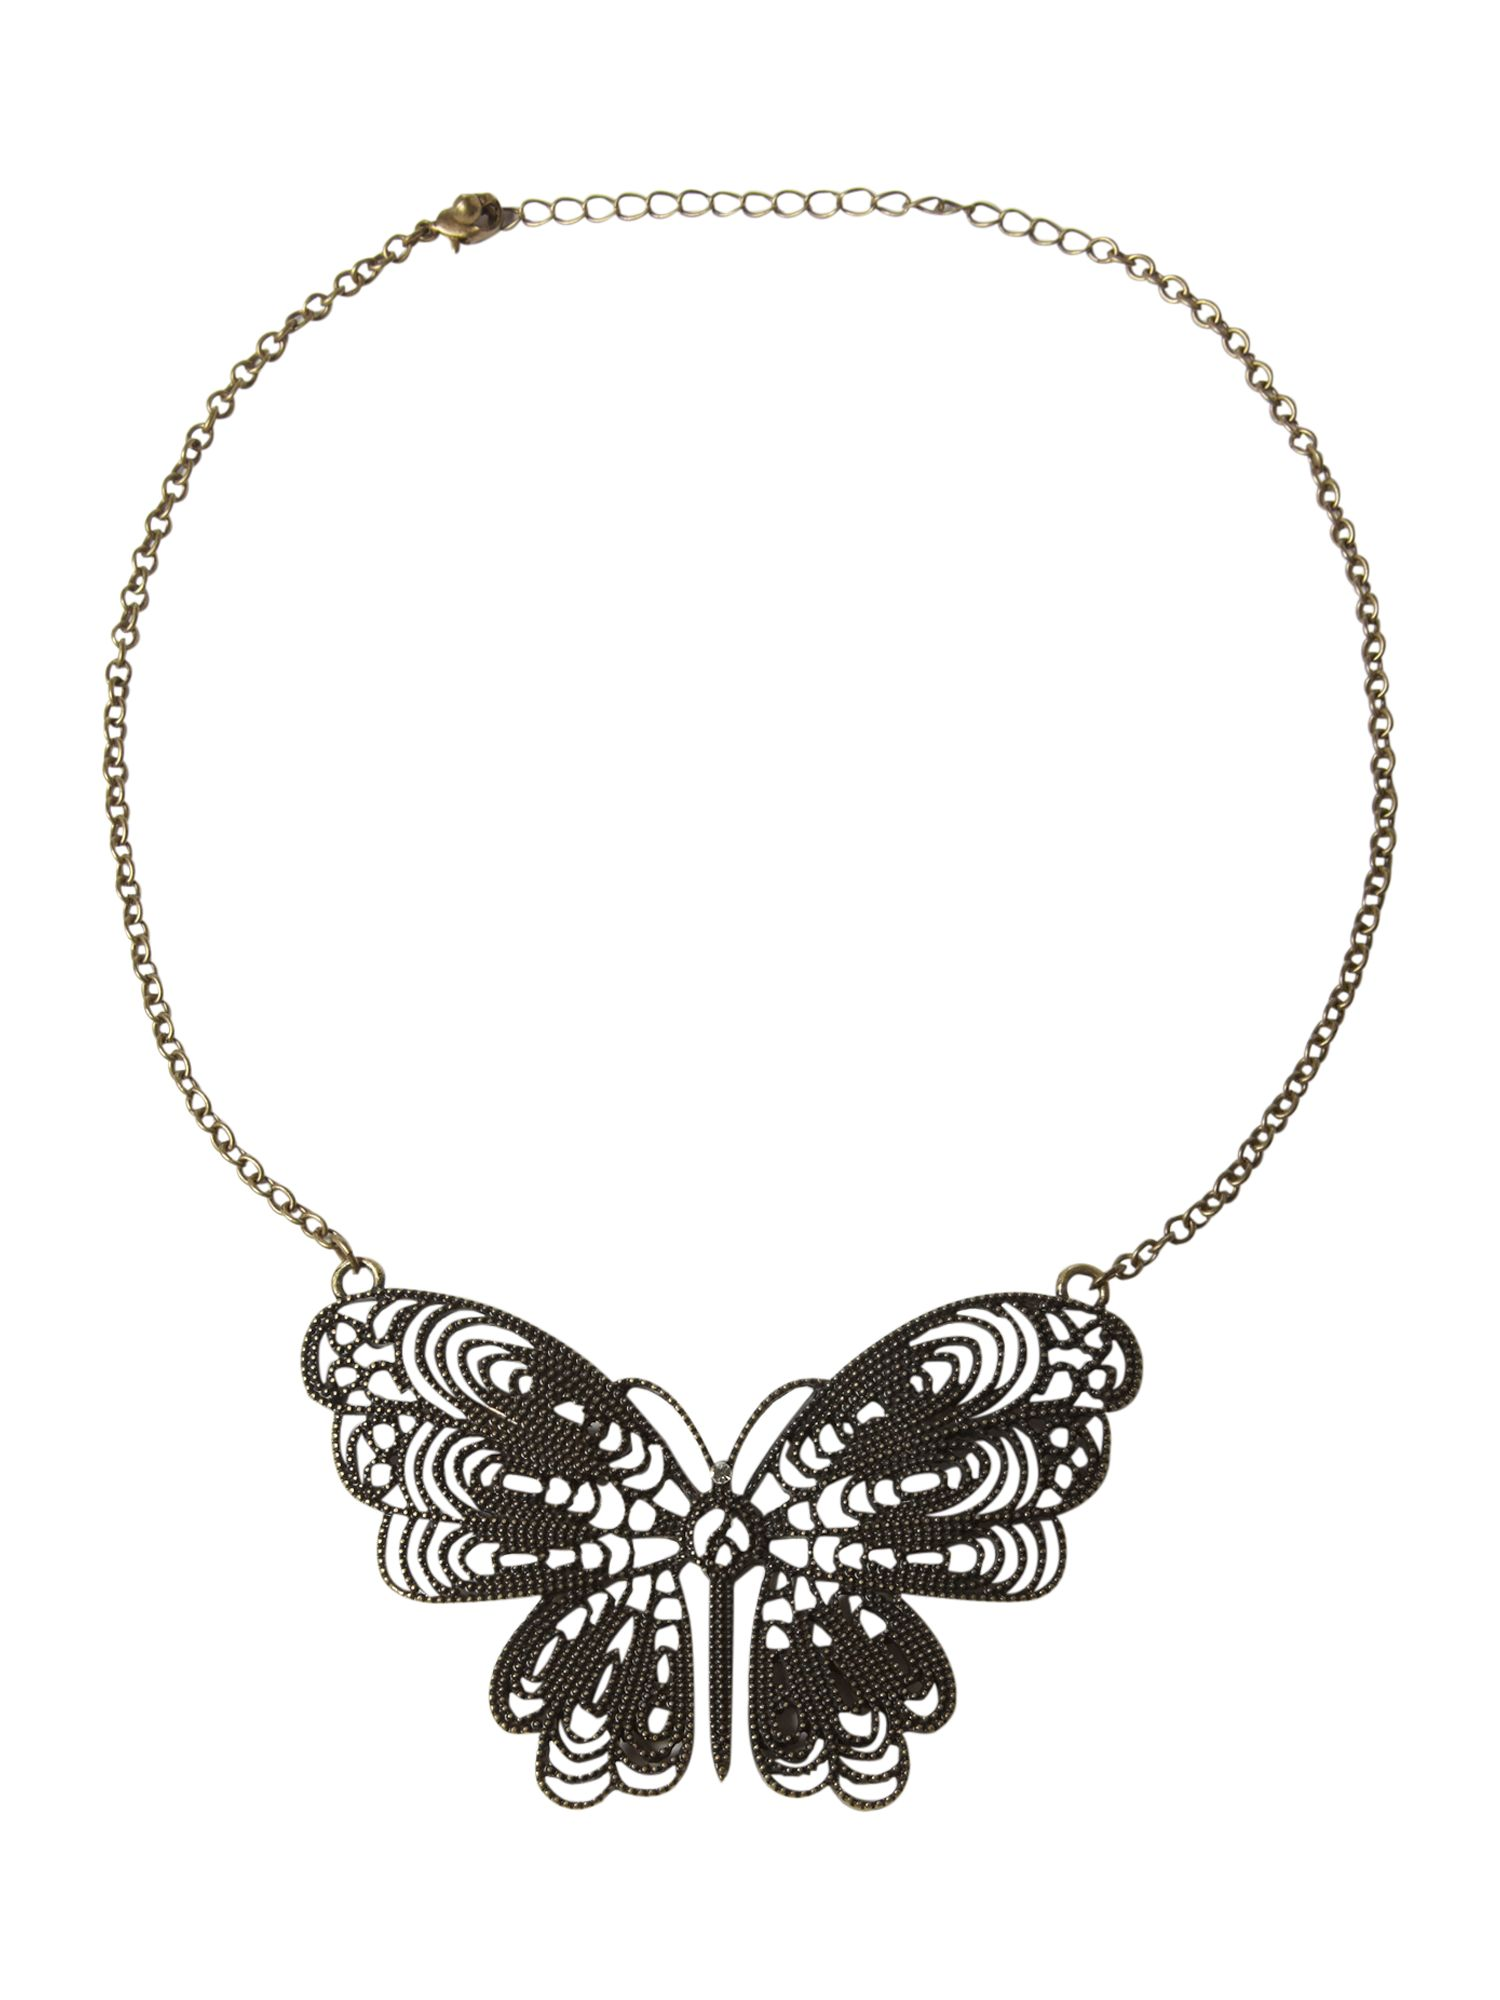 Therapy Butterfly necklace